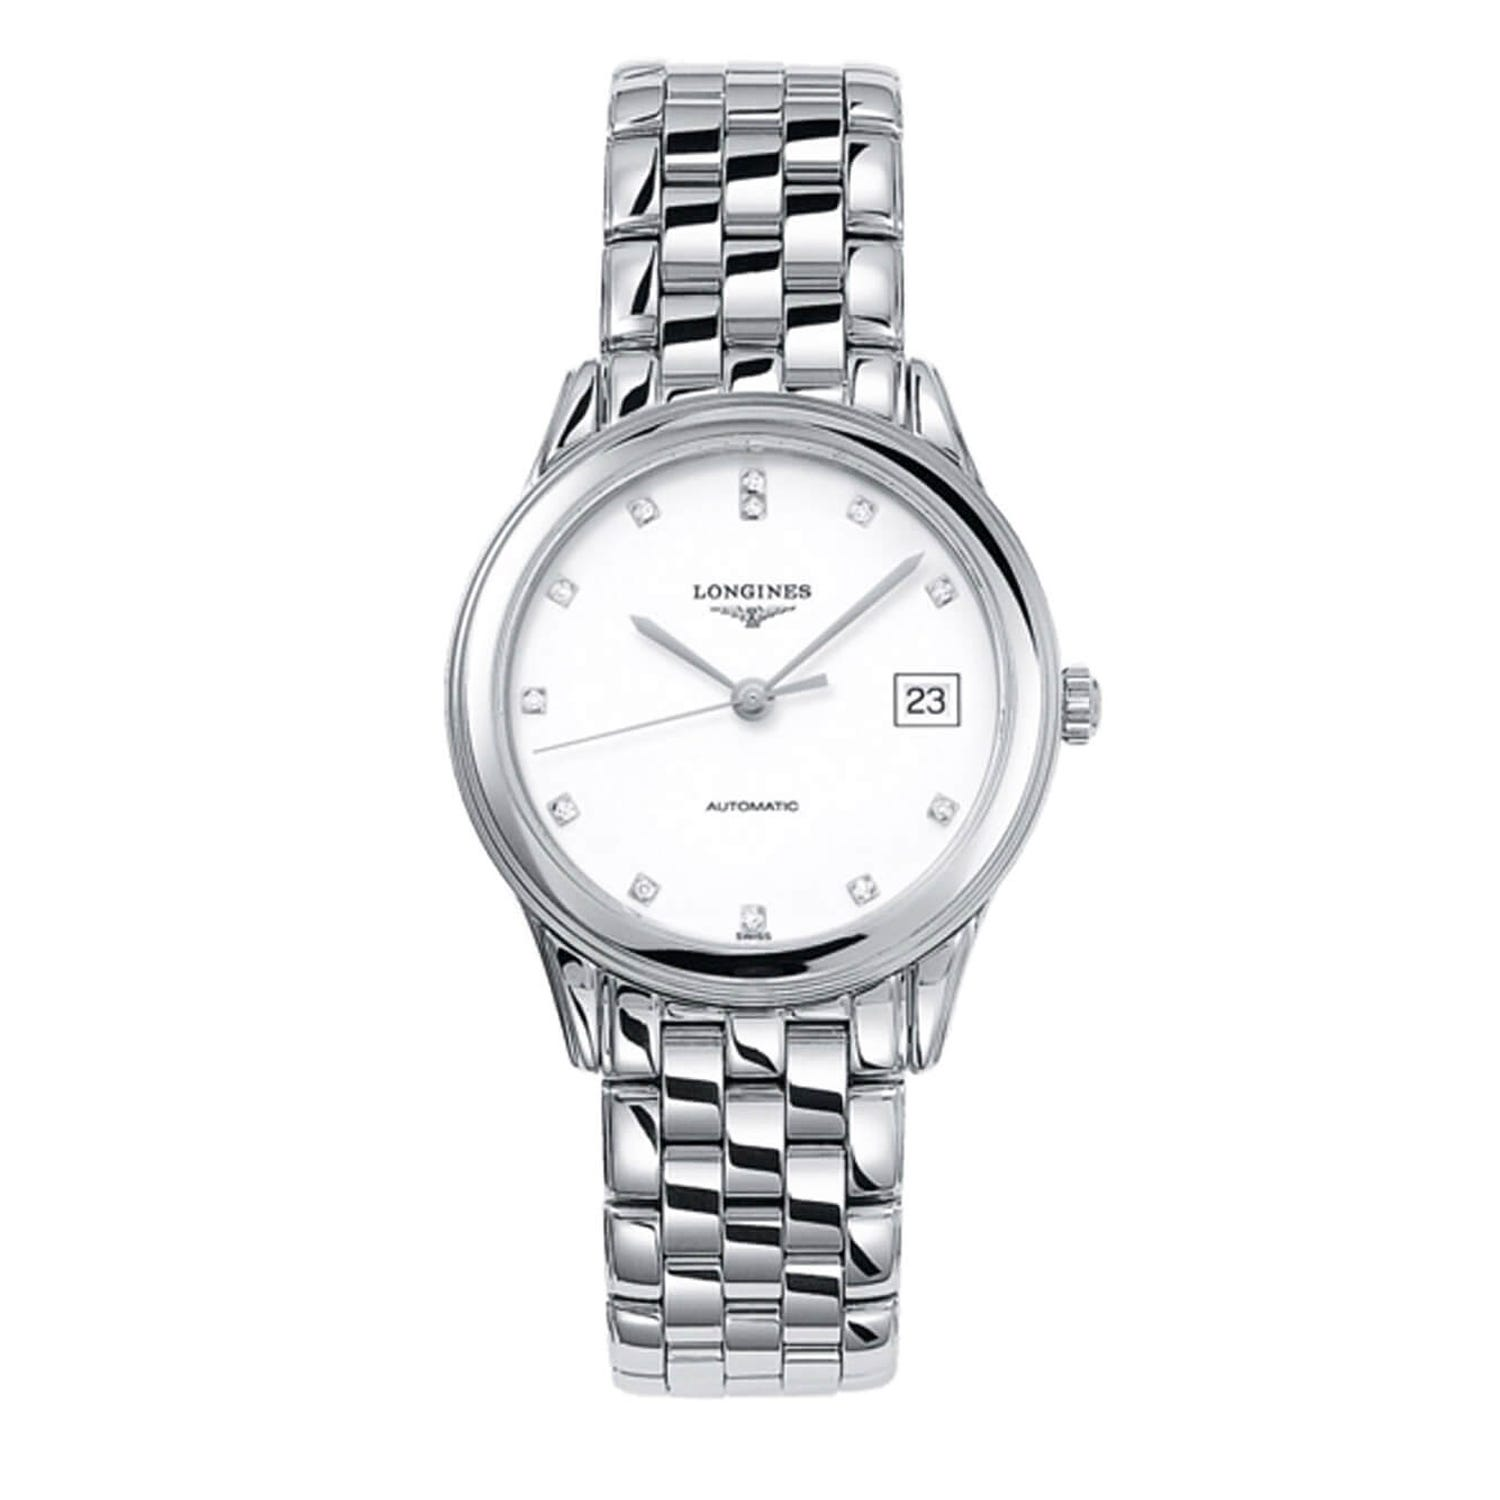 Longines Flagship automatic diamond-set dial stainless steel bracelet watch